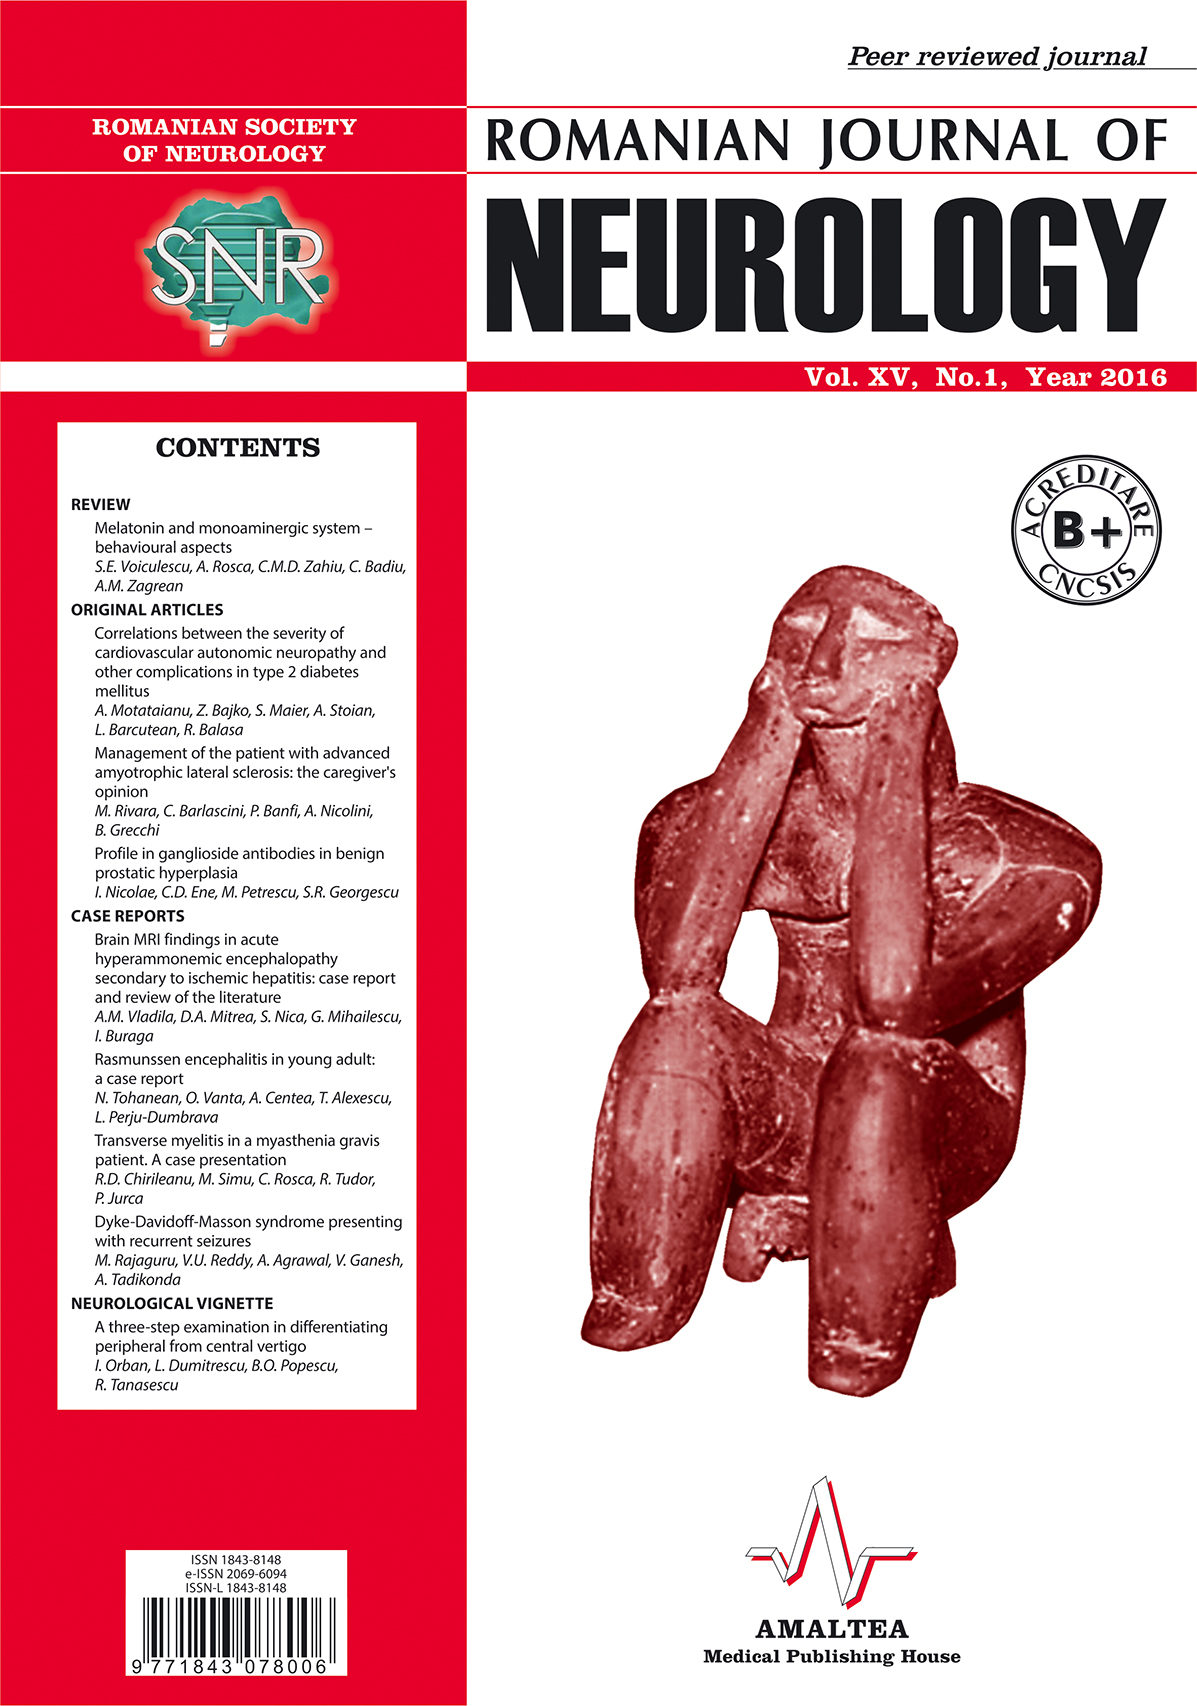 Romanian Journal of Neurology, Volume XV, No. 1, 2016